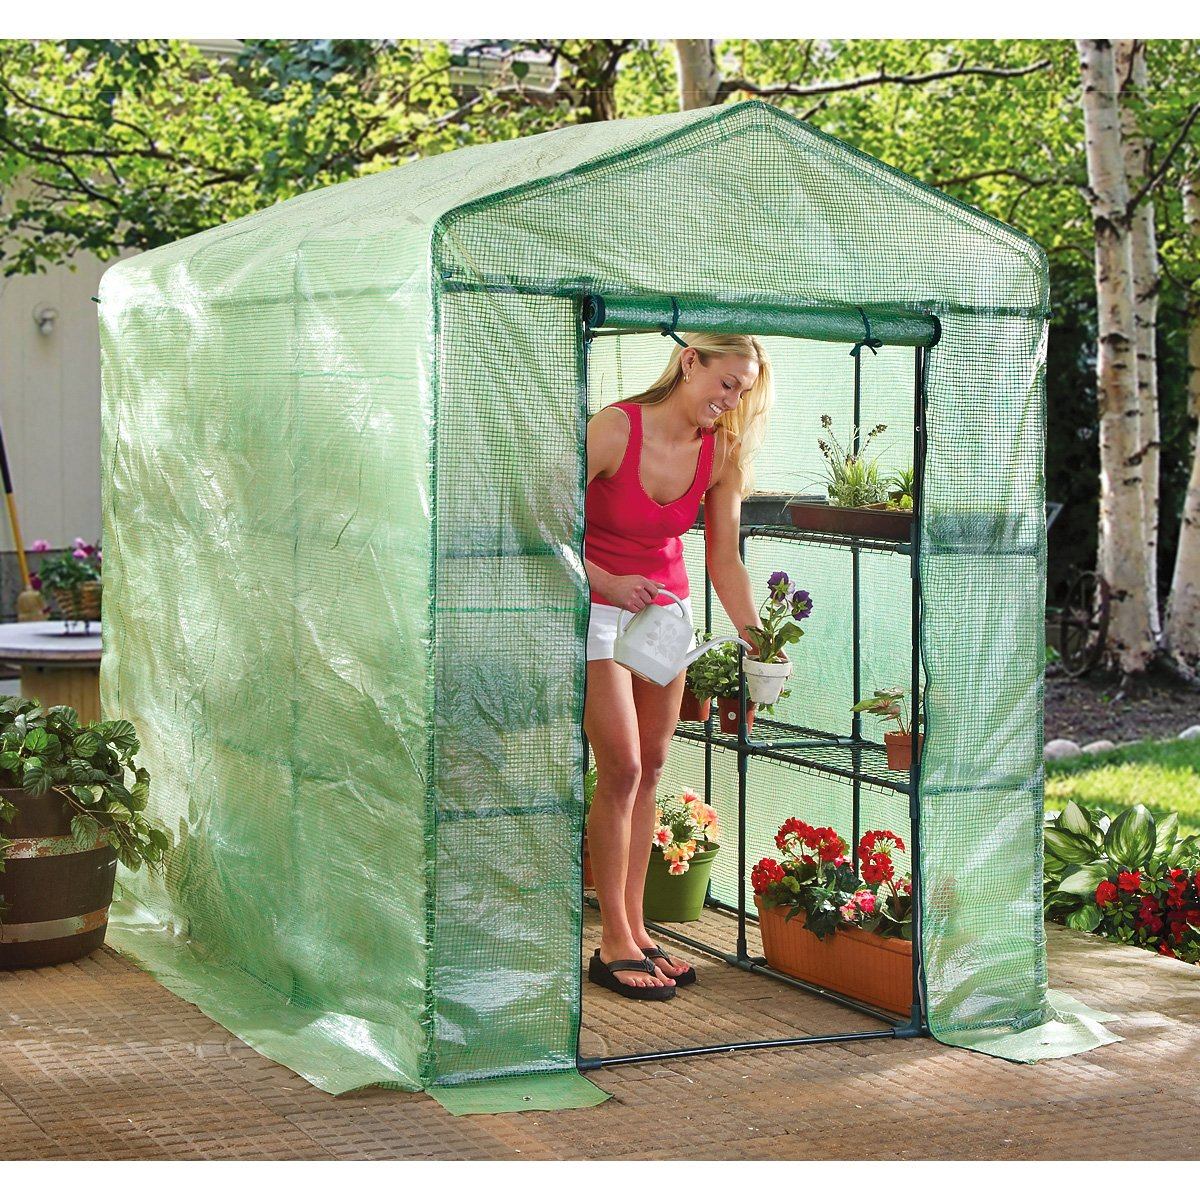 CASTLECREEK Deluxe Walk-in Greenhouse